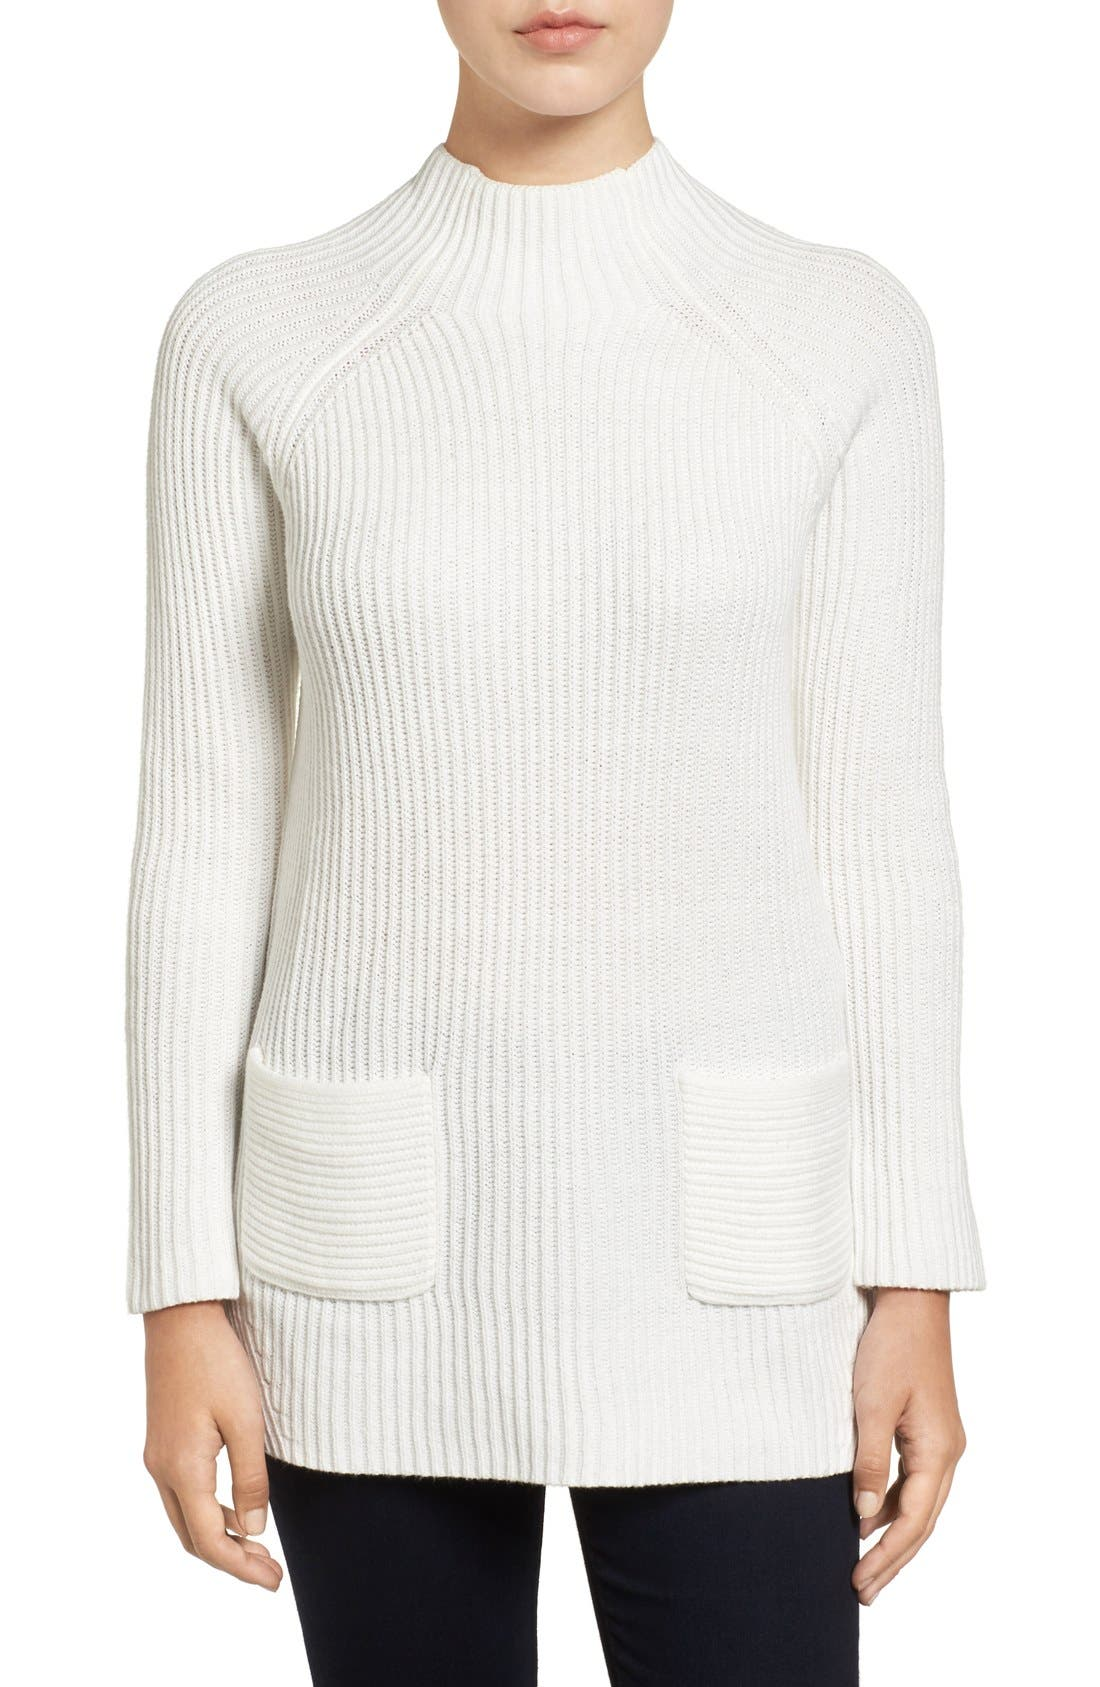 Alternate Image 1 Selected - Chaus Two-Pocket Mock Neck Tunic Sweater